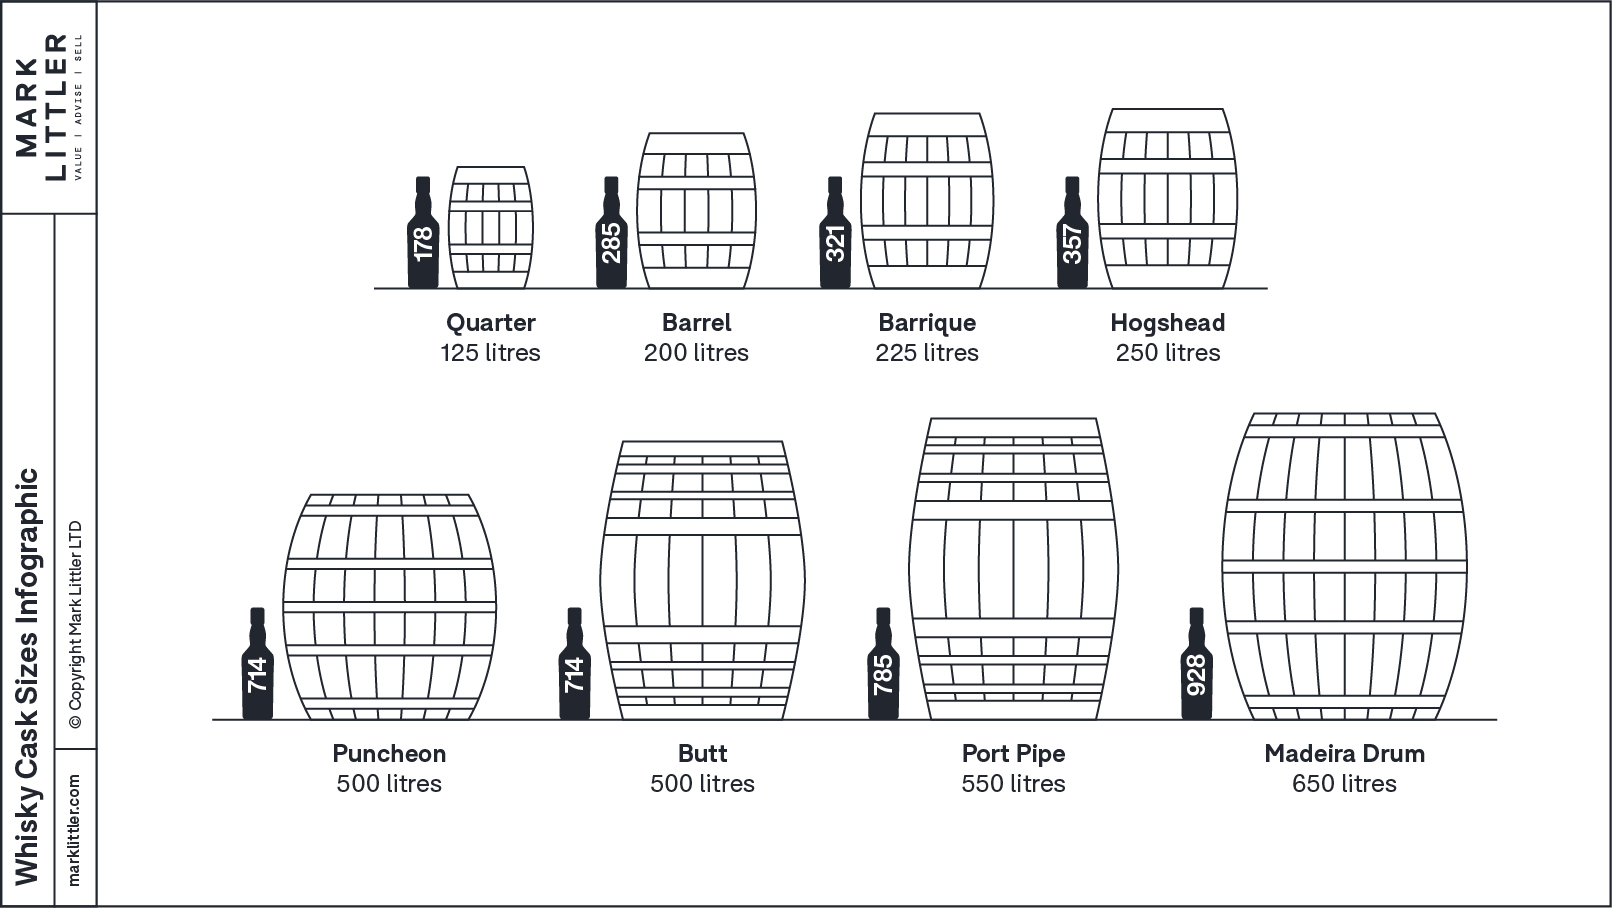 An infographic showing how many bottles are in different whisky casks